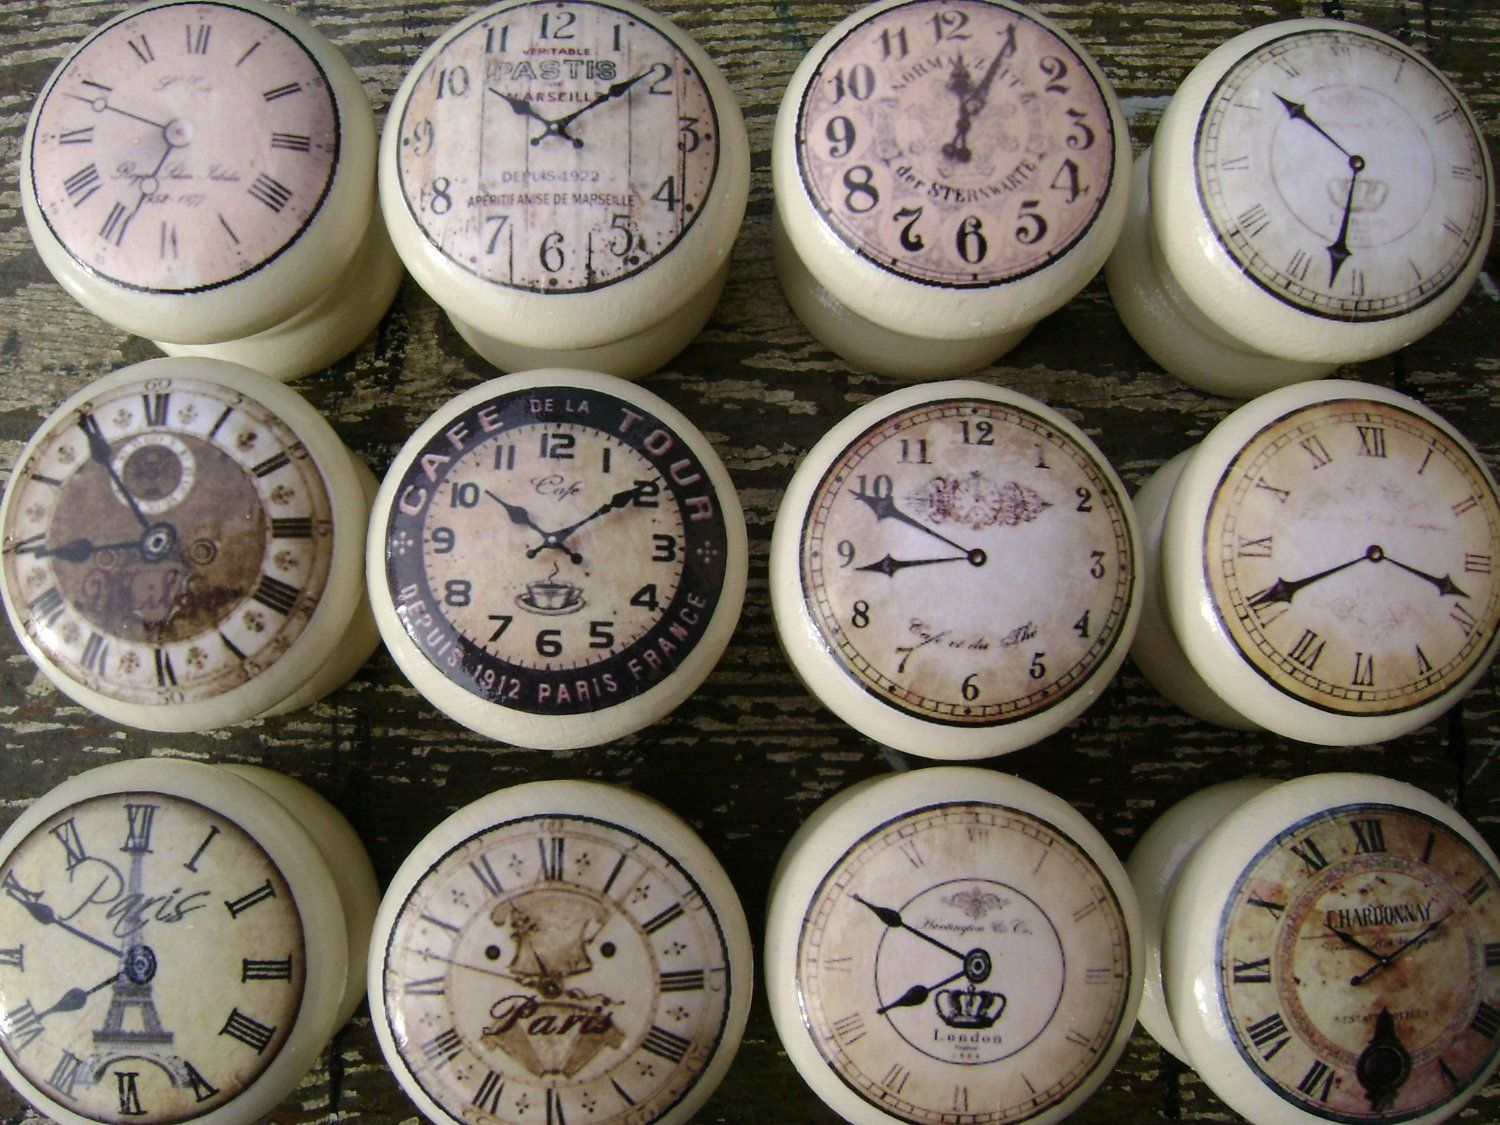 Diy Cabinet Knobs Set Of 8 Cream Vintage Clocks 45mm Shabby Chic Wooden Drawer